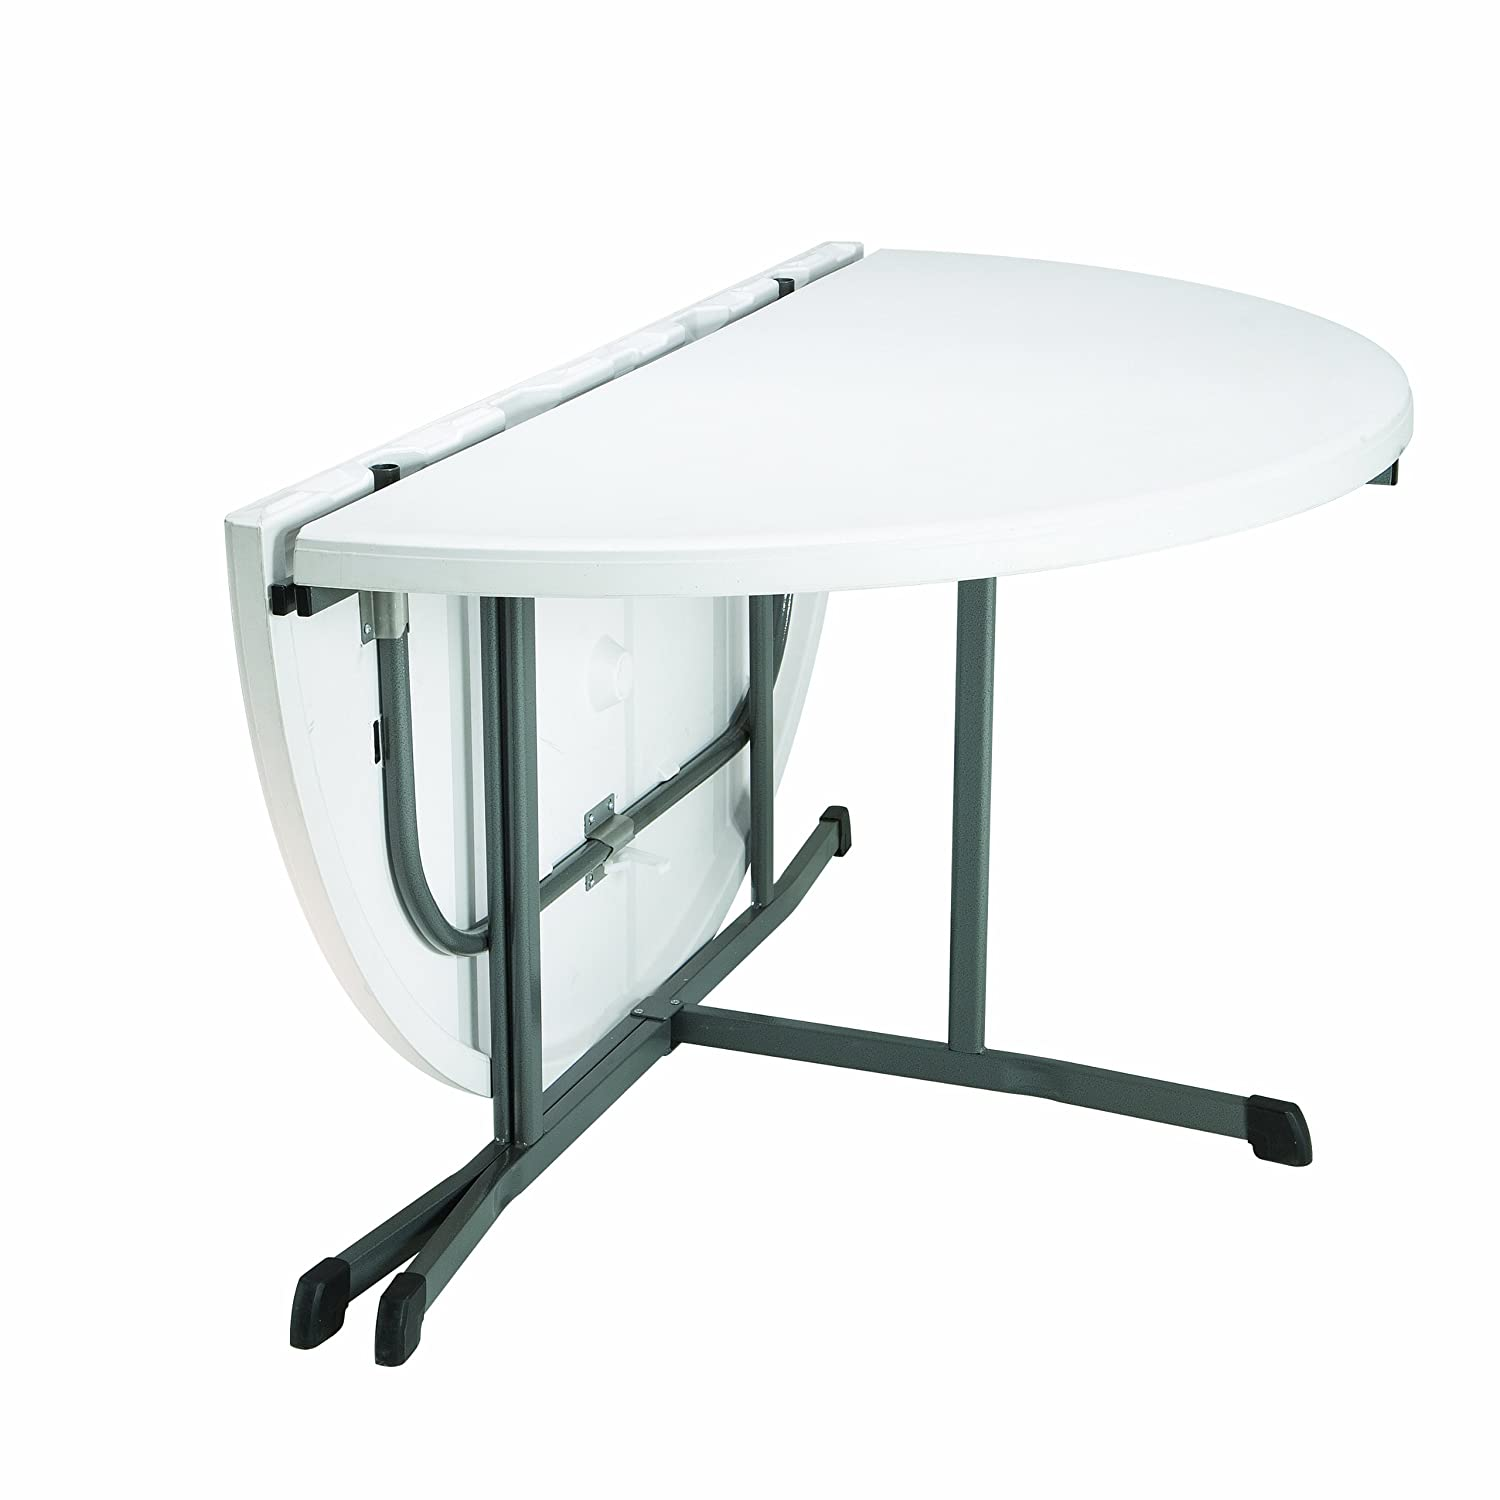 Superb Amazon.com: Lifetime 25402 Commercial Round Fold In Half Table, 5 Feet ,  White Granite: Garden U0026 Outdoor